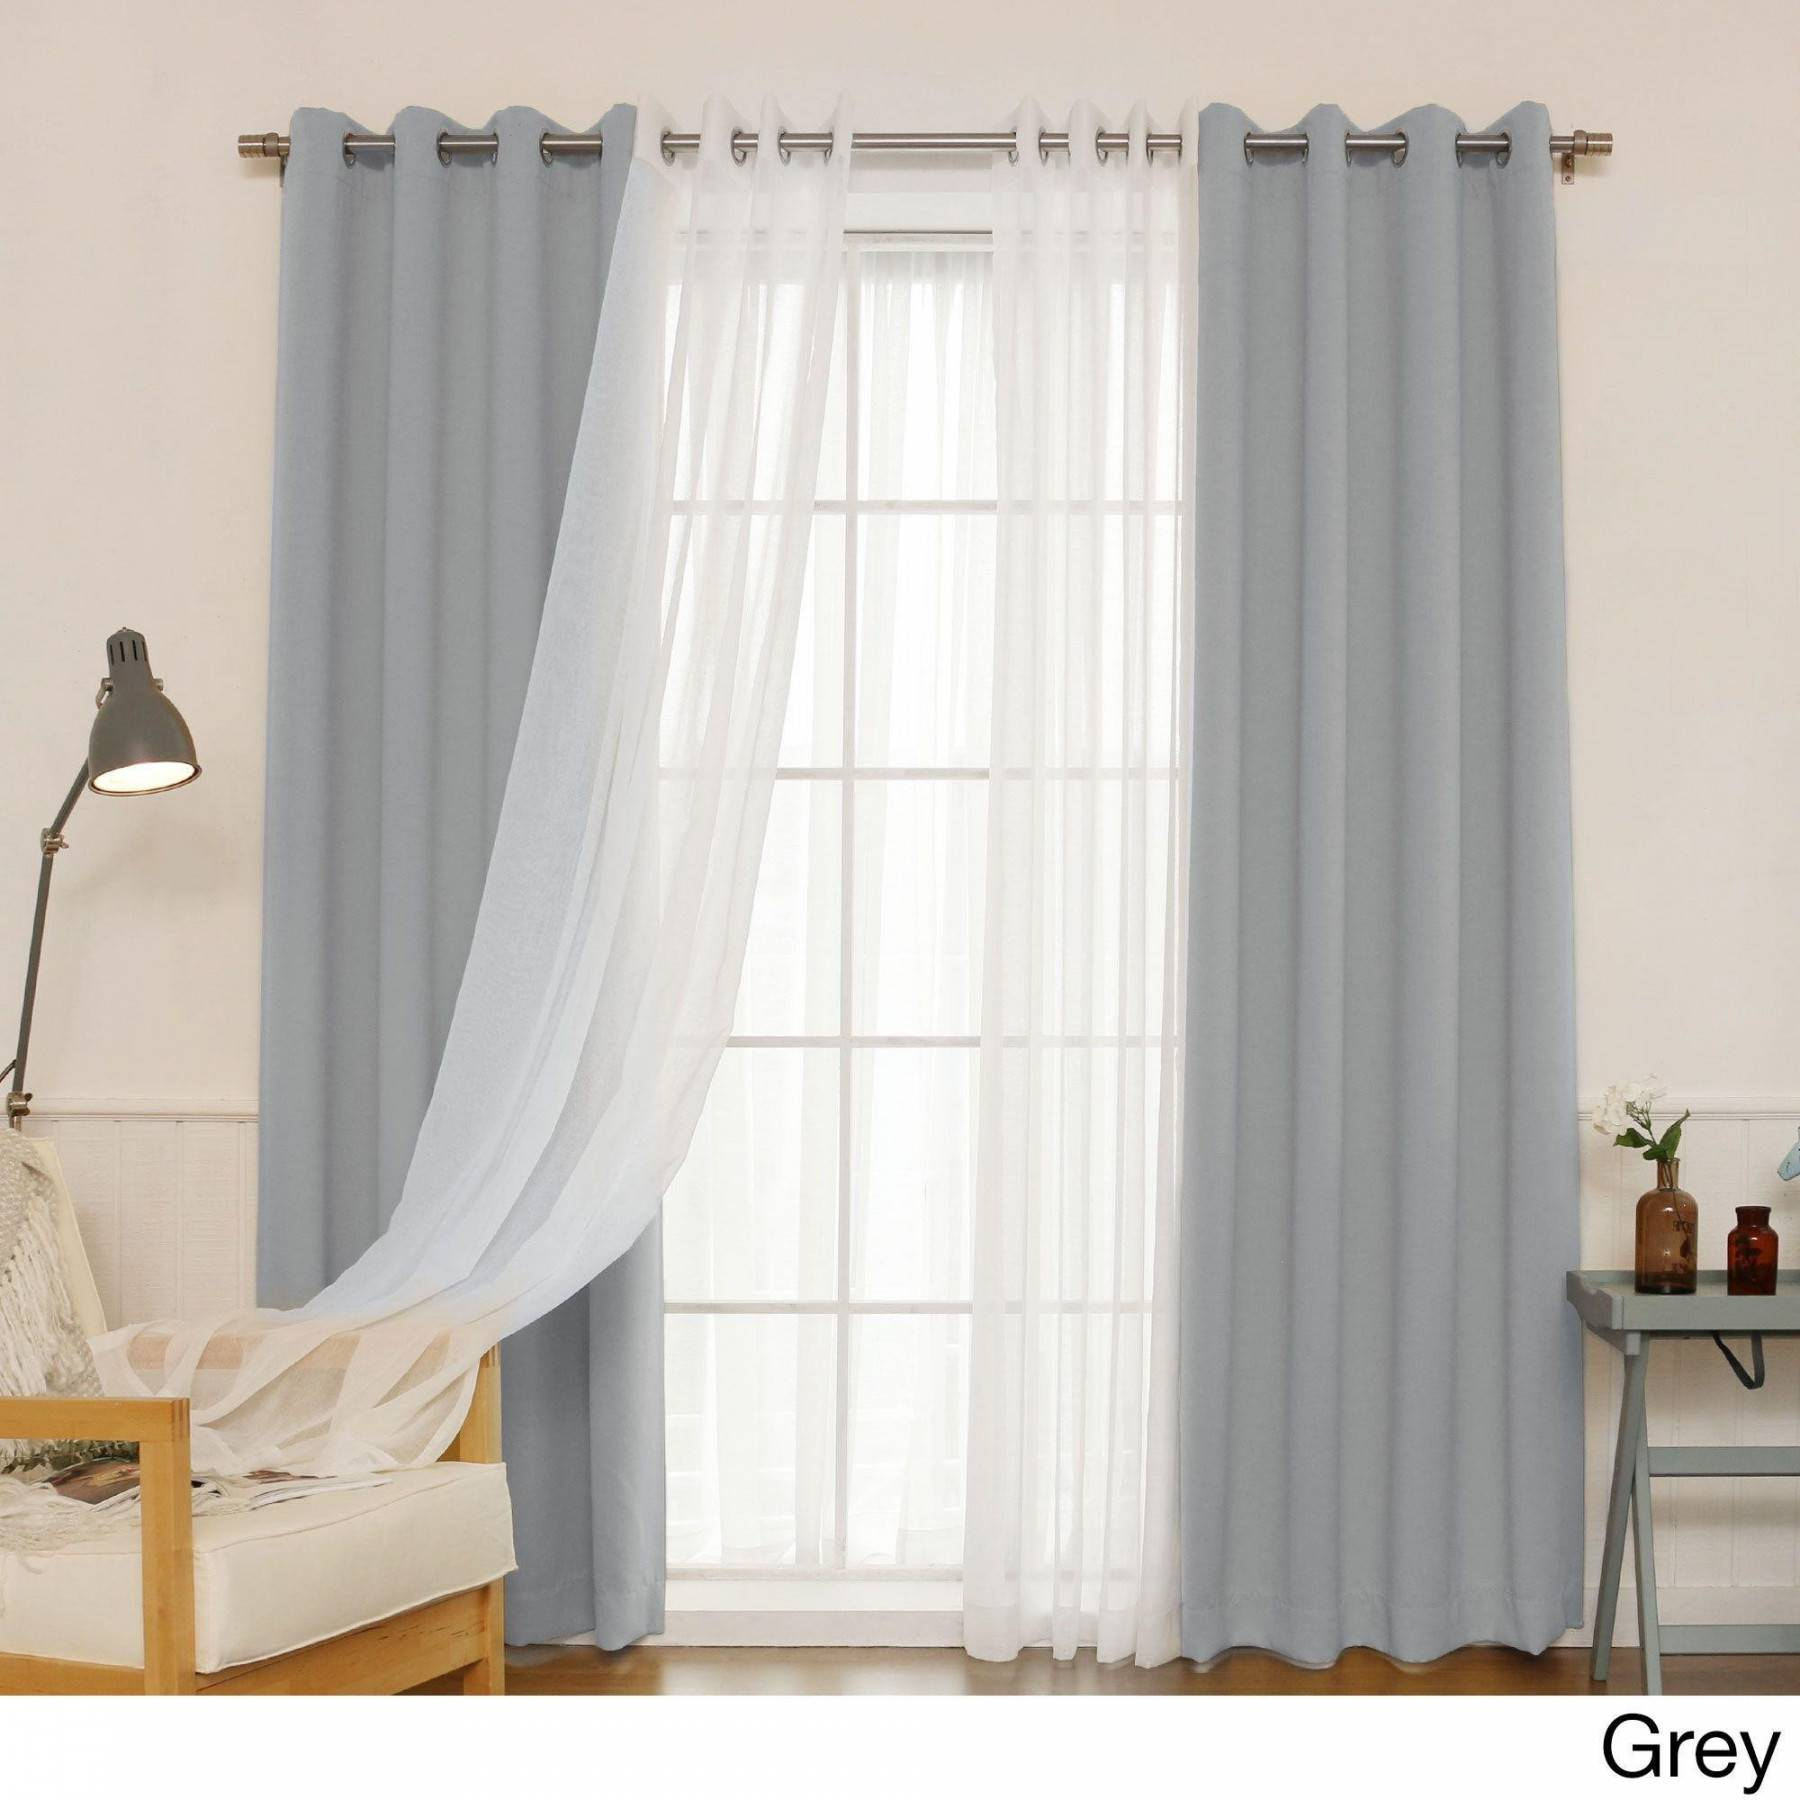 house window curtain designs 22 unique bedroom window curtains bemalas of house window curtain designs